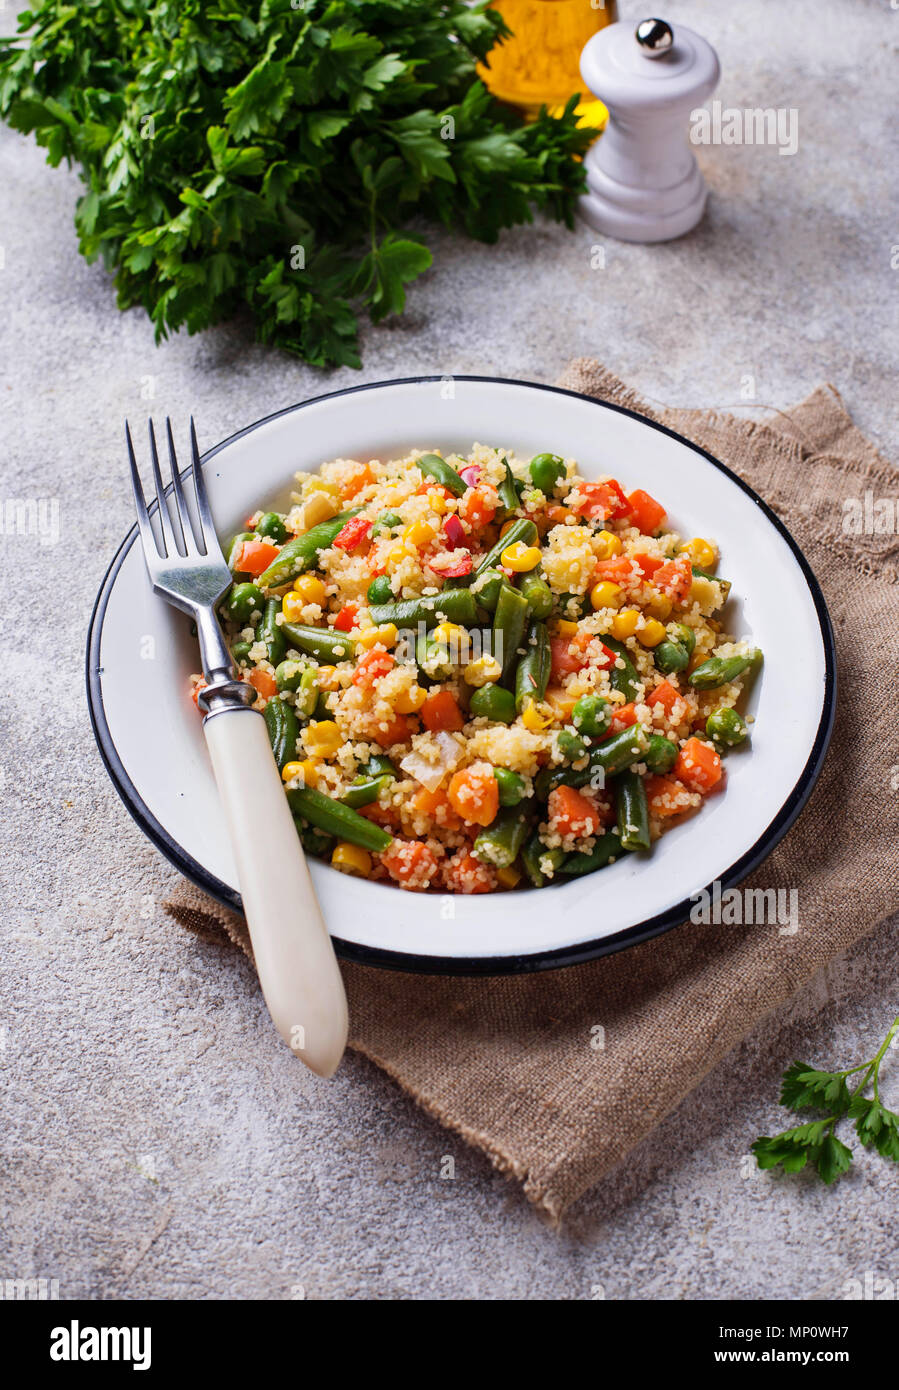 Vegetarian dish couscous with vegetables - Stock Image